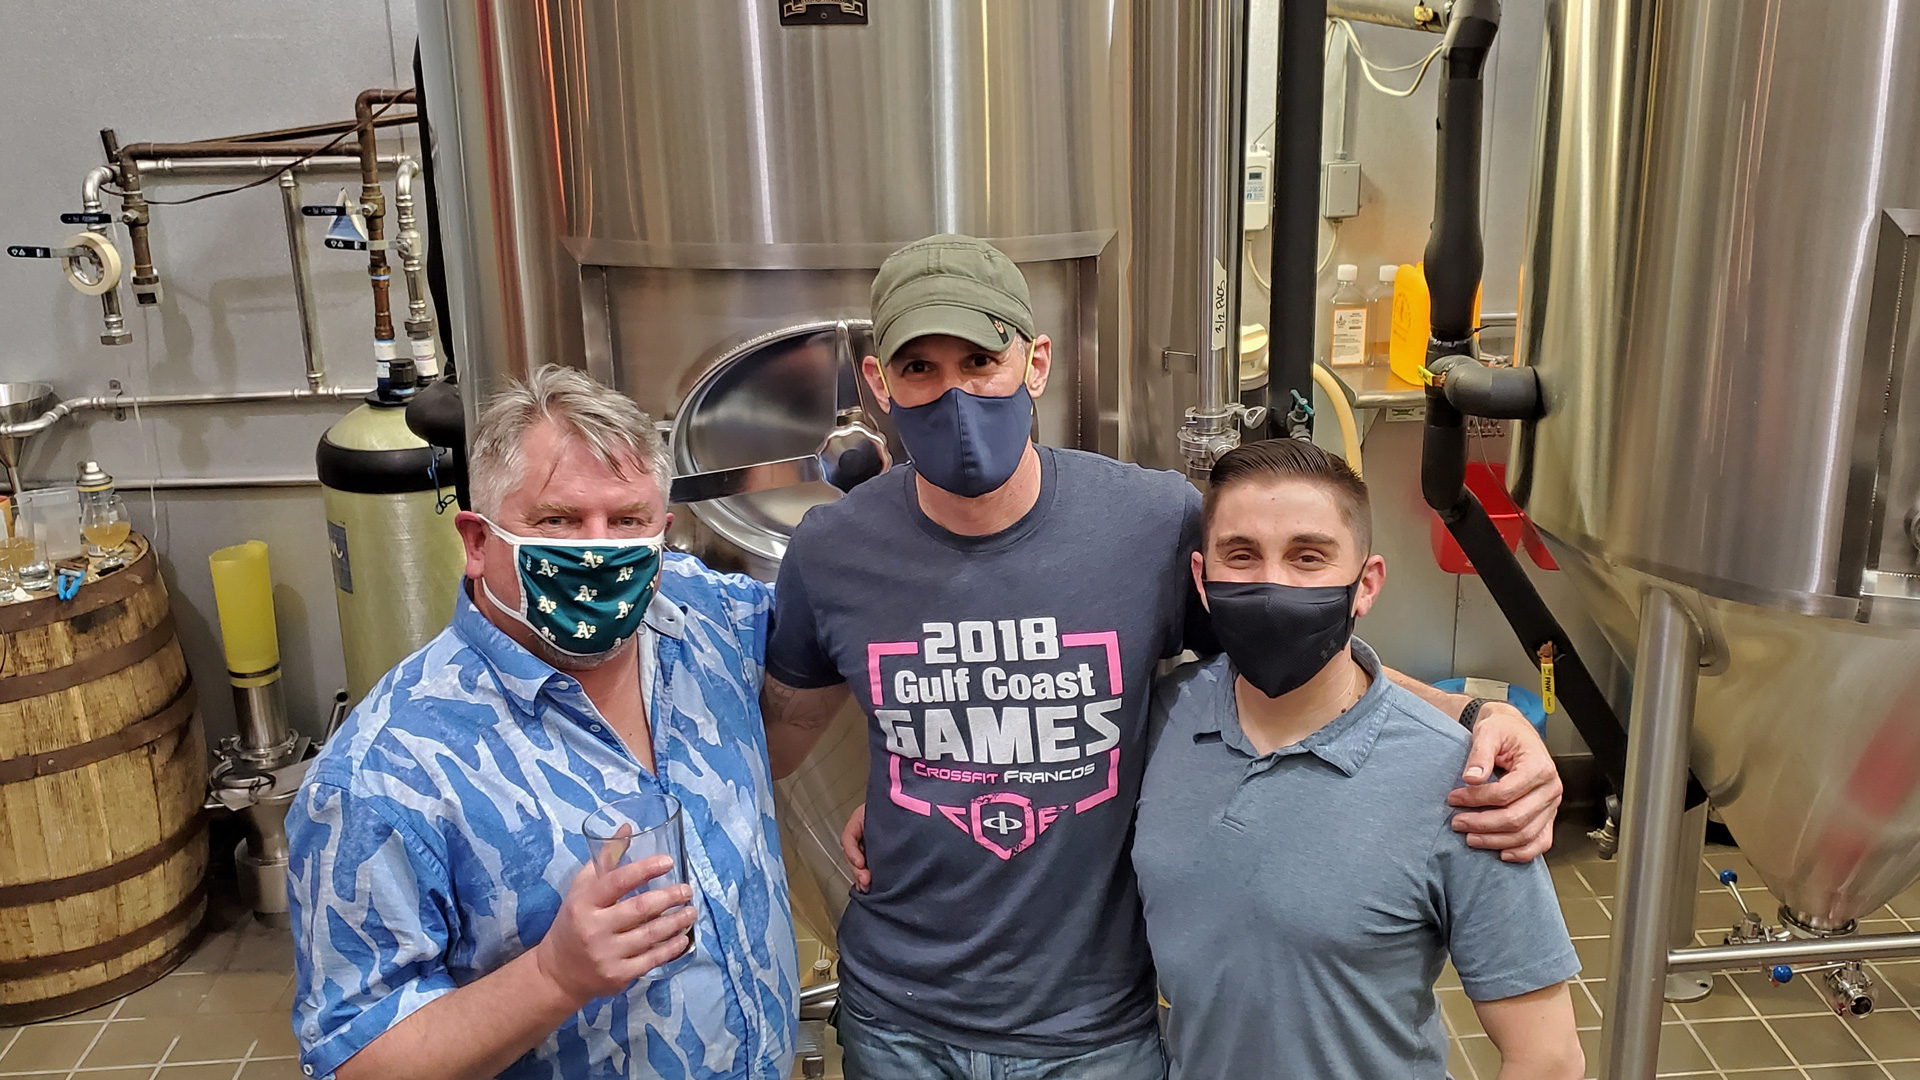 The NOLADrinks Show with Bryan Dias – Mexican Style Lager and More on Beer – 2021Ep7. Bryan Dias of The NOLADrinks Show, Matt Horney of Old Rail Brewing Co., and Sal Mortillaro of the Beer Judging Certification Program.